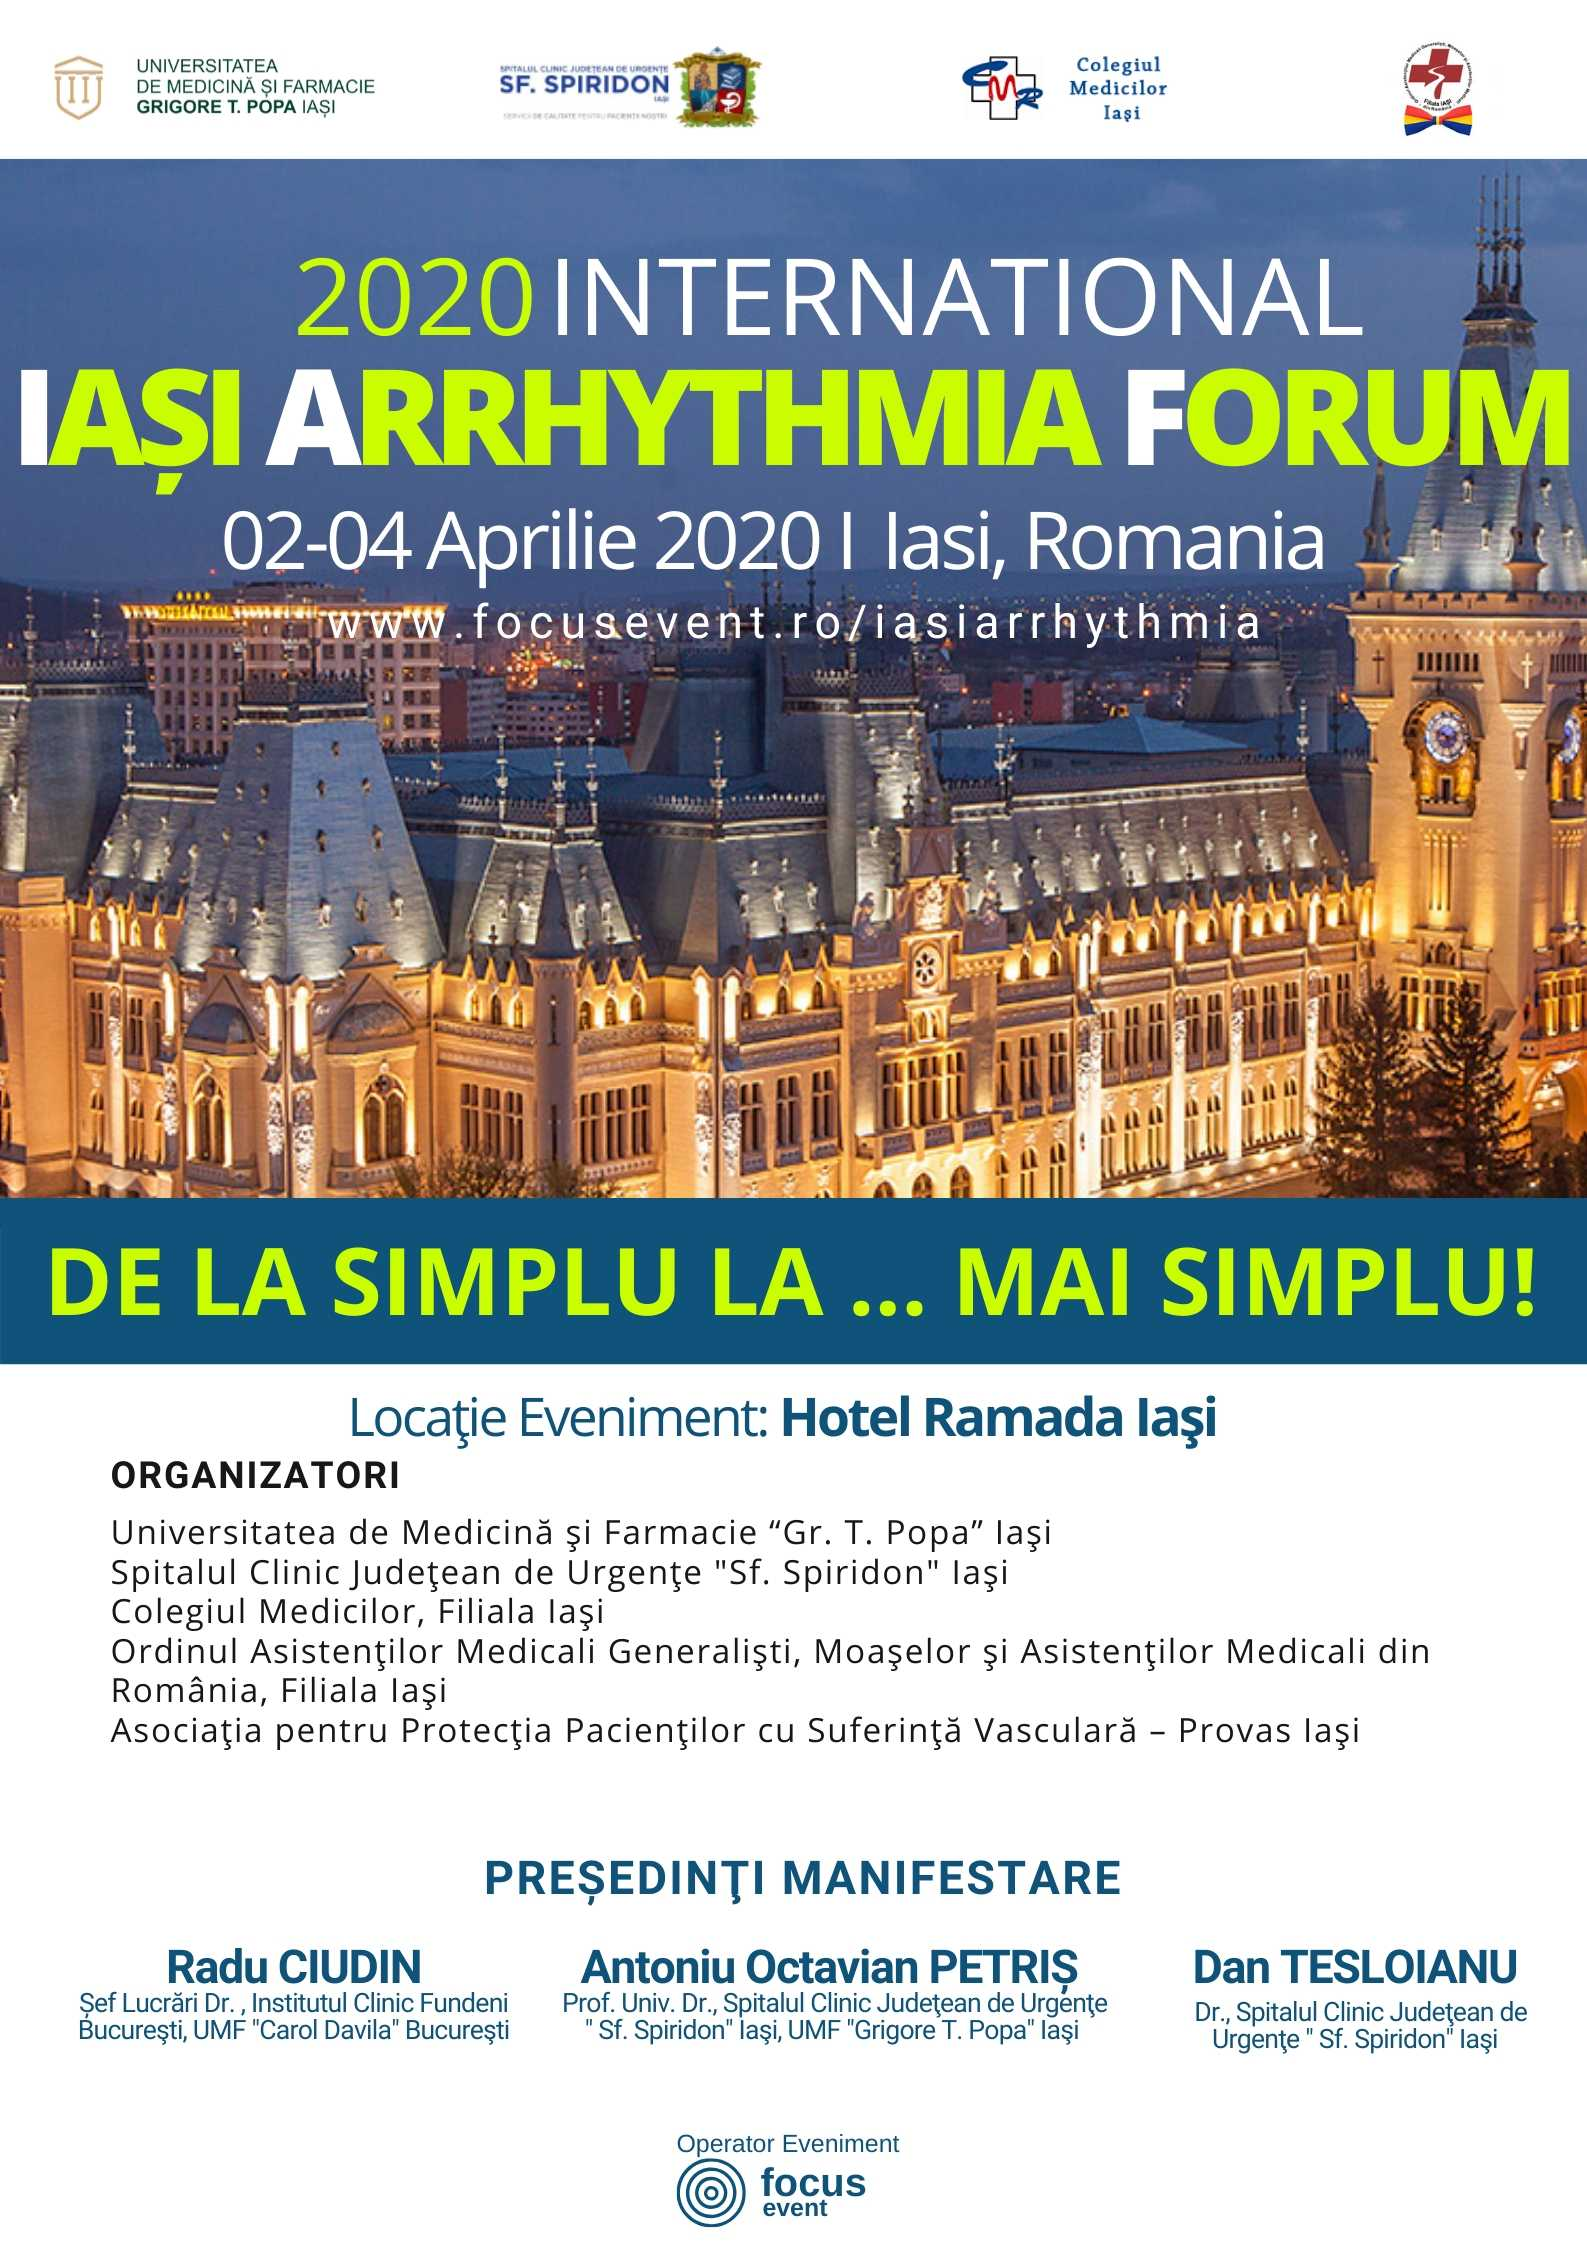 International AFIS IASI ARRHYTHMIA FORUM 2020 (1)